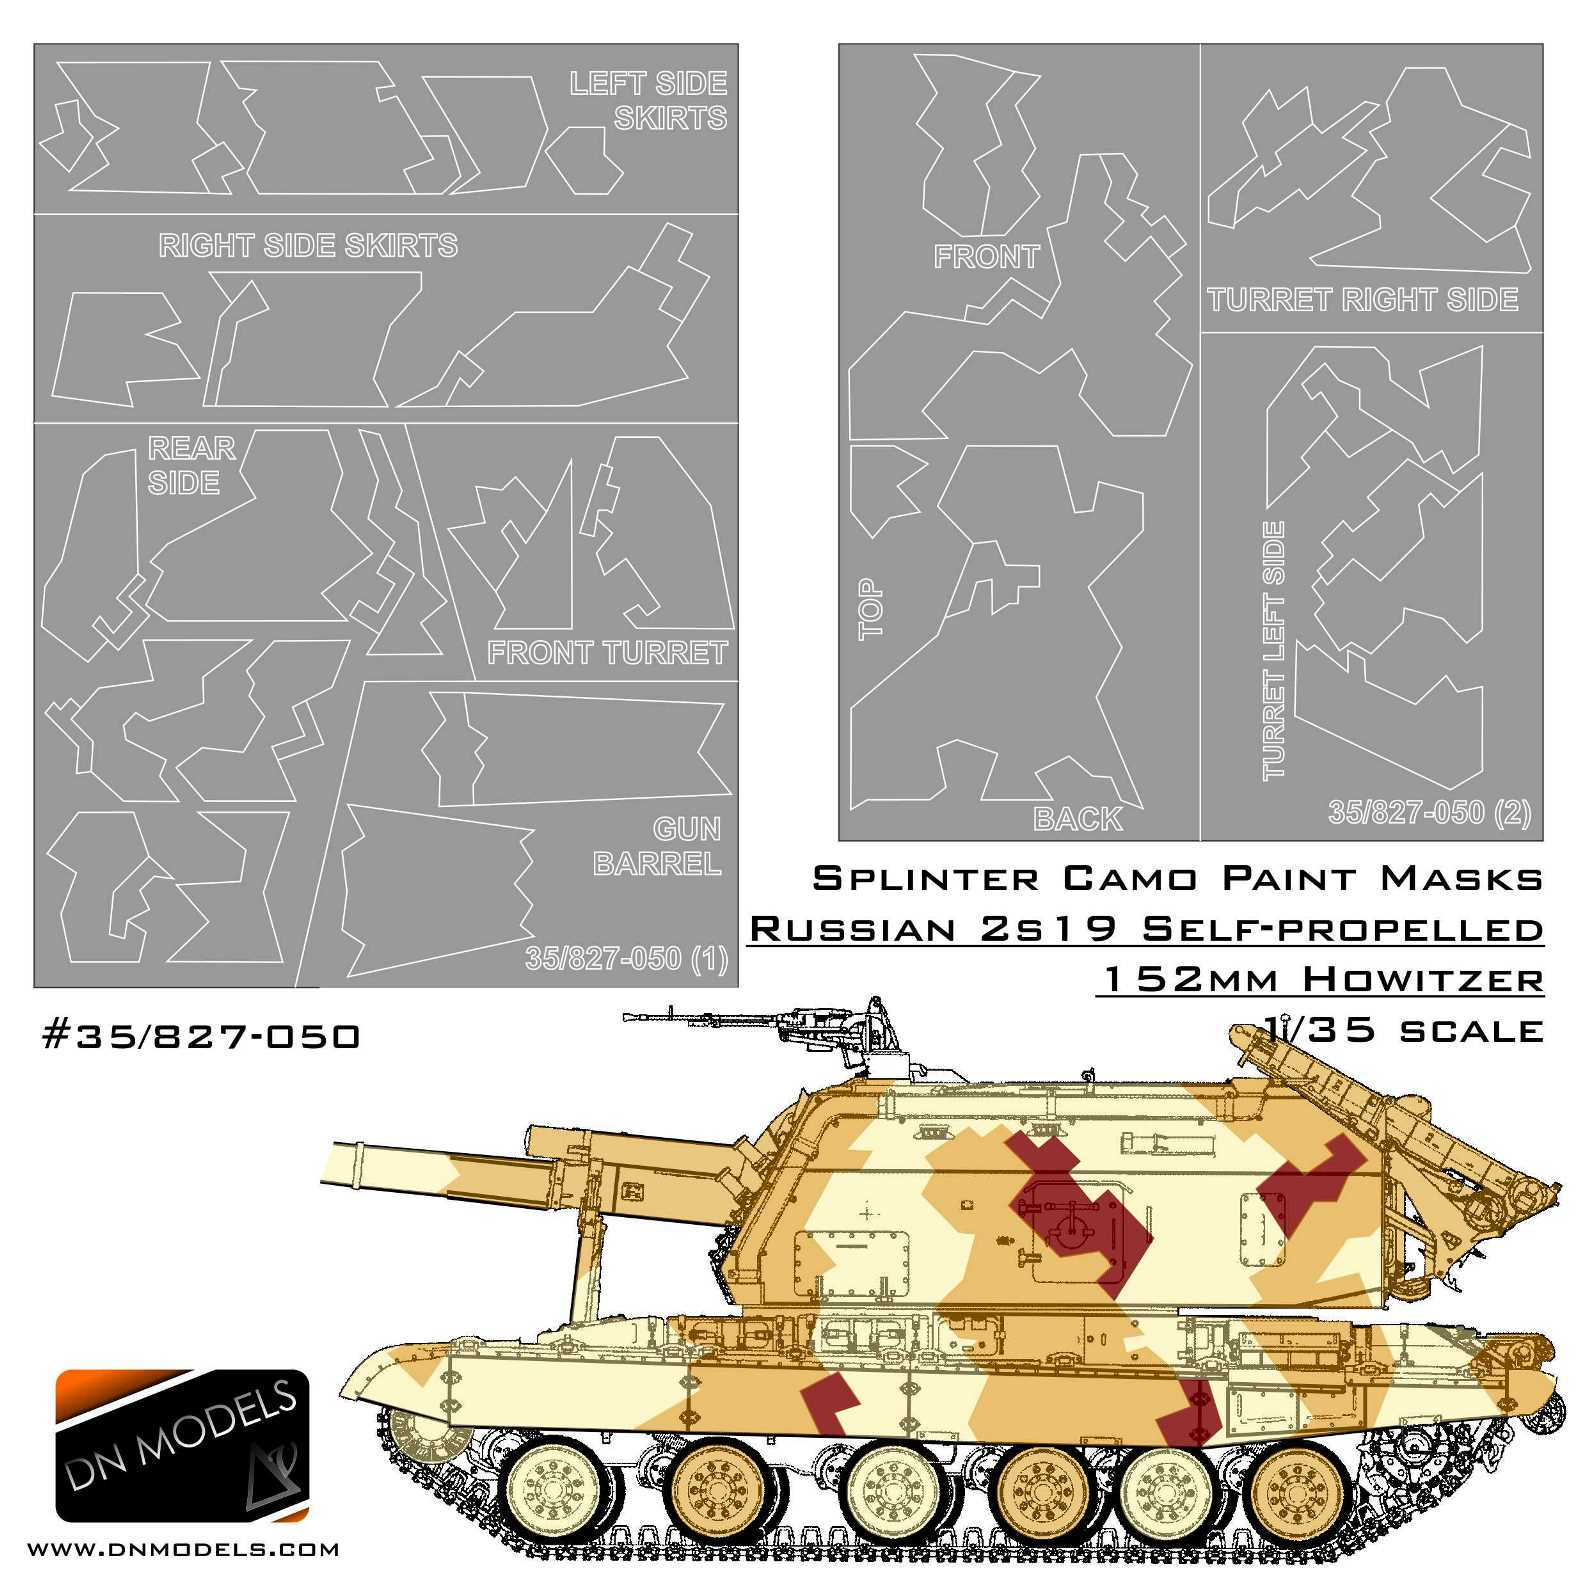 ff8afaaac15f Splinter Camo Paint Masks for T-14 Armata MBT 1 35 » DN Models